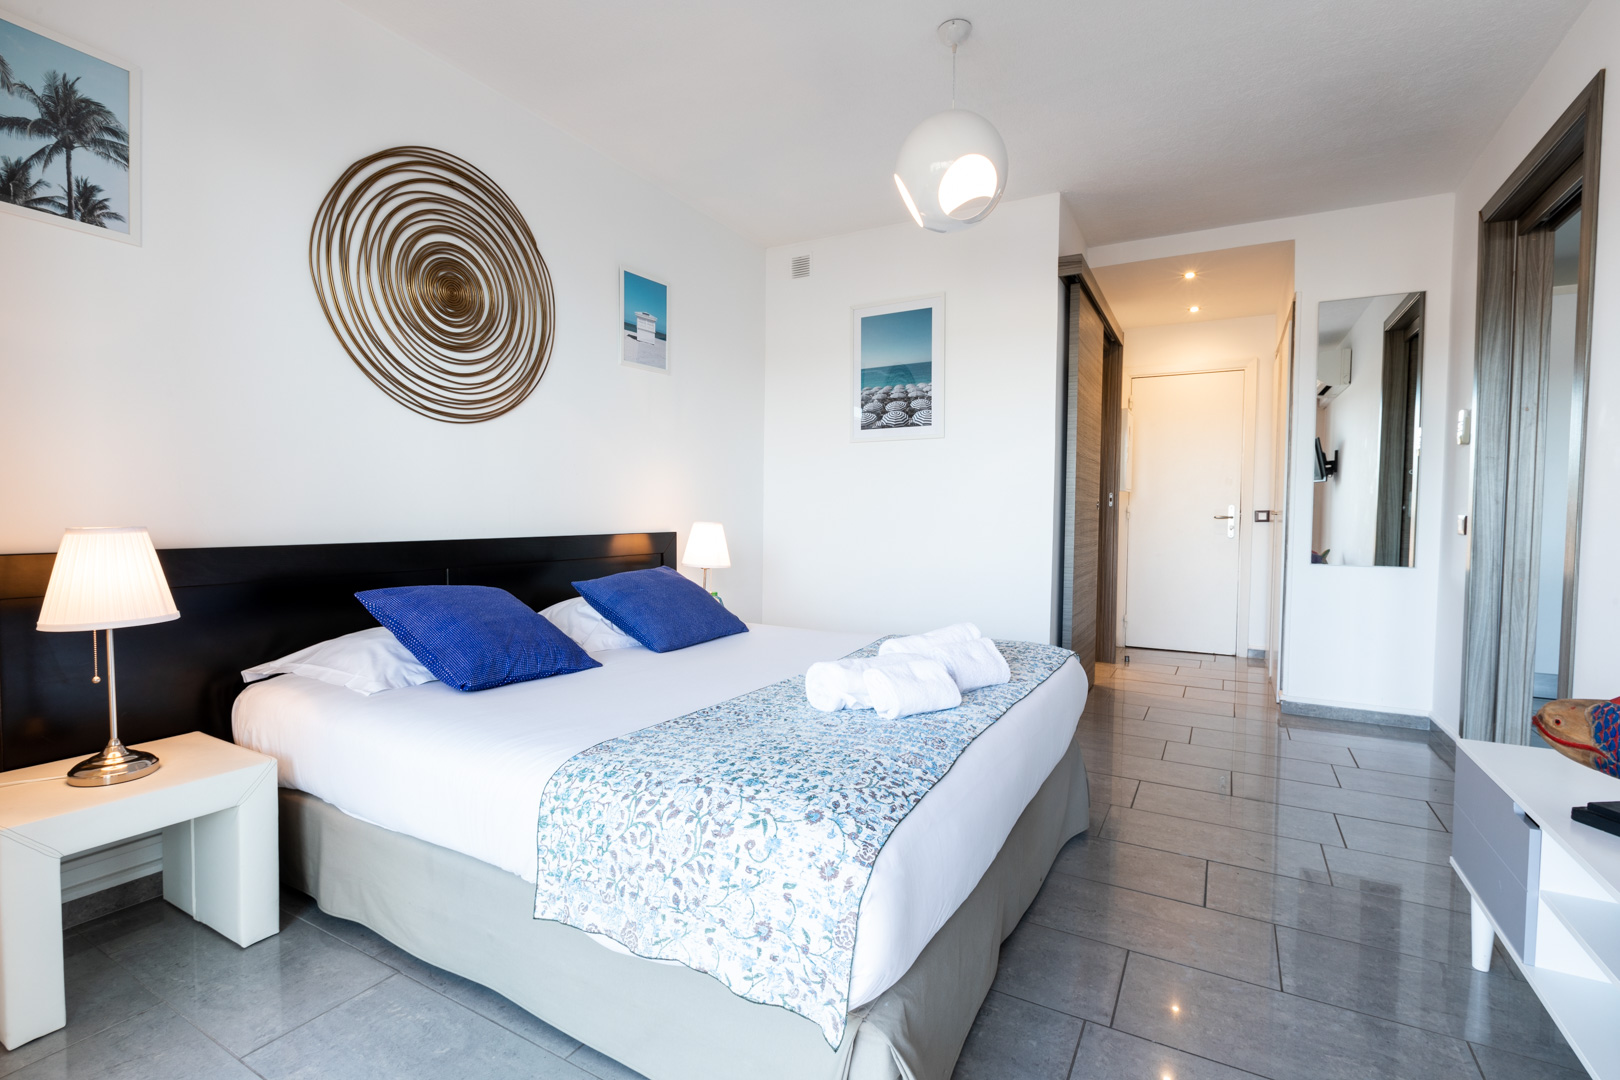 Double bed at Sky View Terrace Apartment